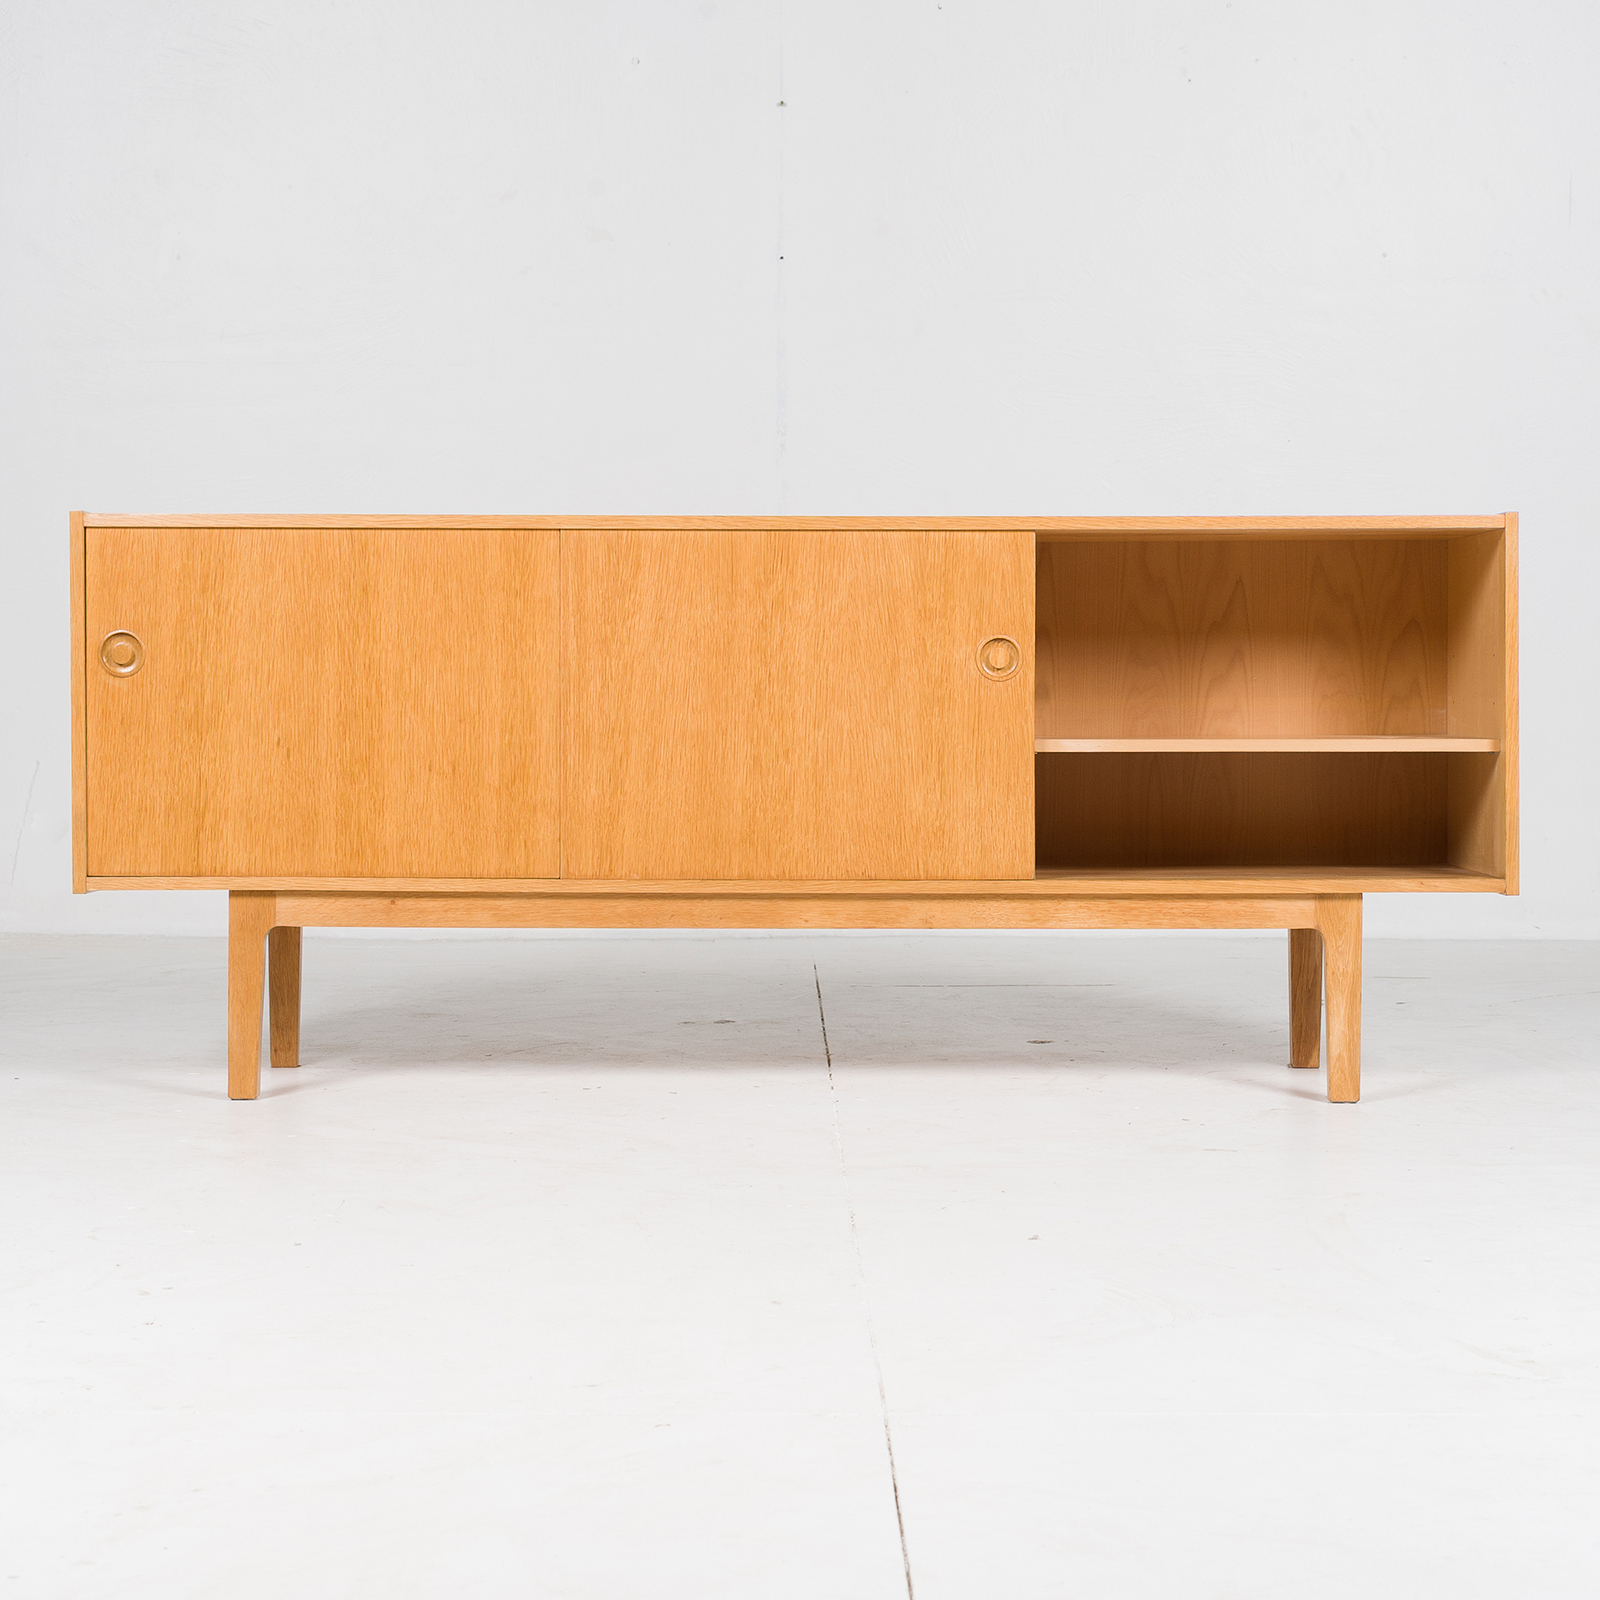 Sideboard In Oak With Drawers And Sliding Doors, 1960s, Denmark400